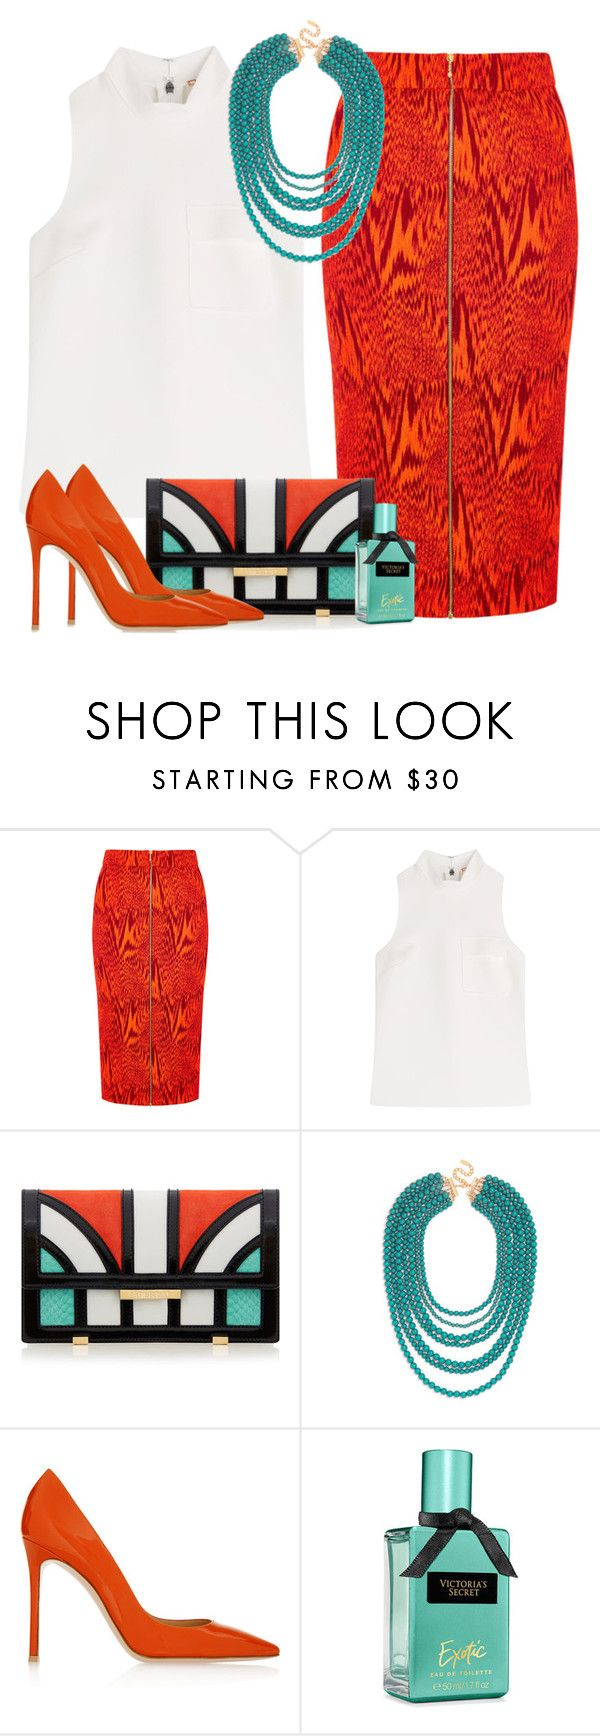 """№860"" by a2k2011 ❤ liked on Polyvore featuring House of Holland, MSGM, Aperlaï, BaubleBar and Gianvito Rossi"